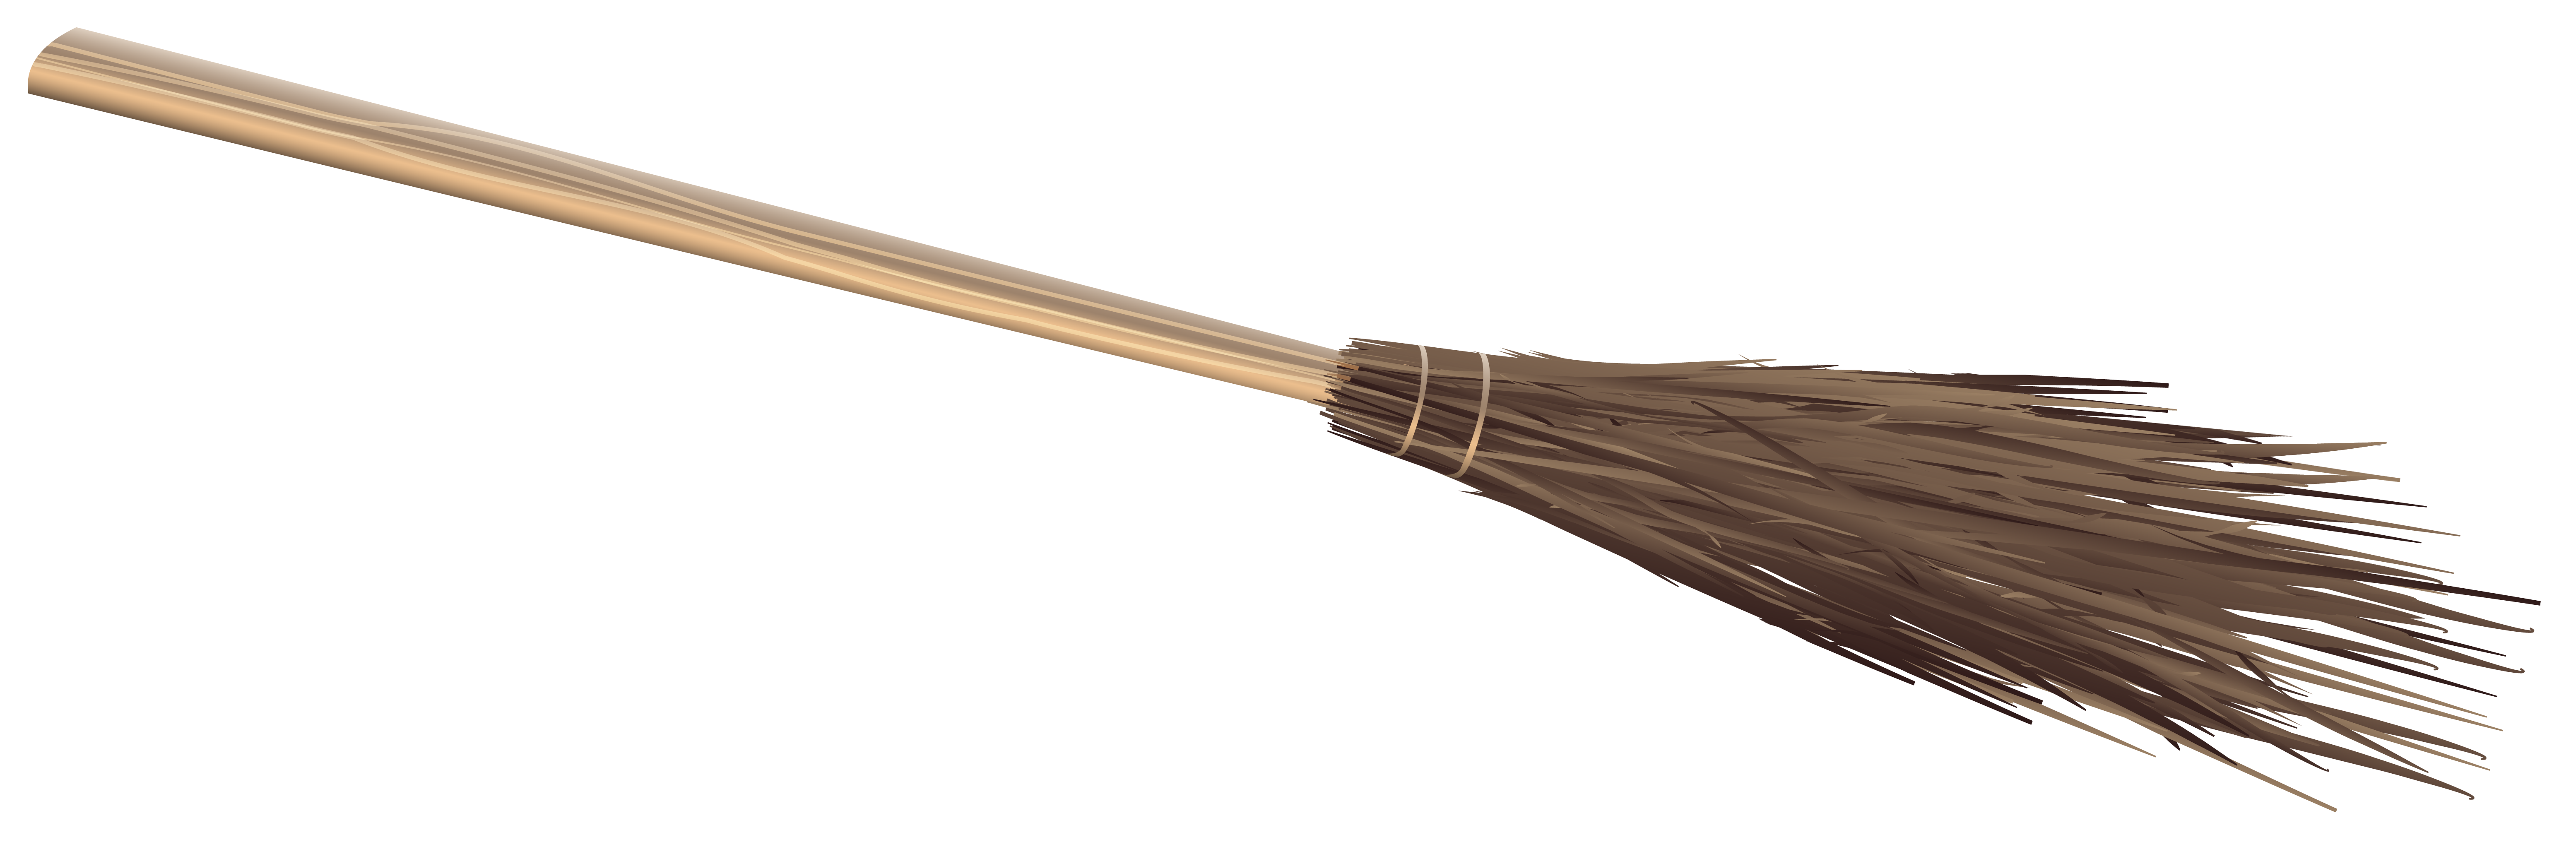 Witch Broom PNG Clipart Image.